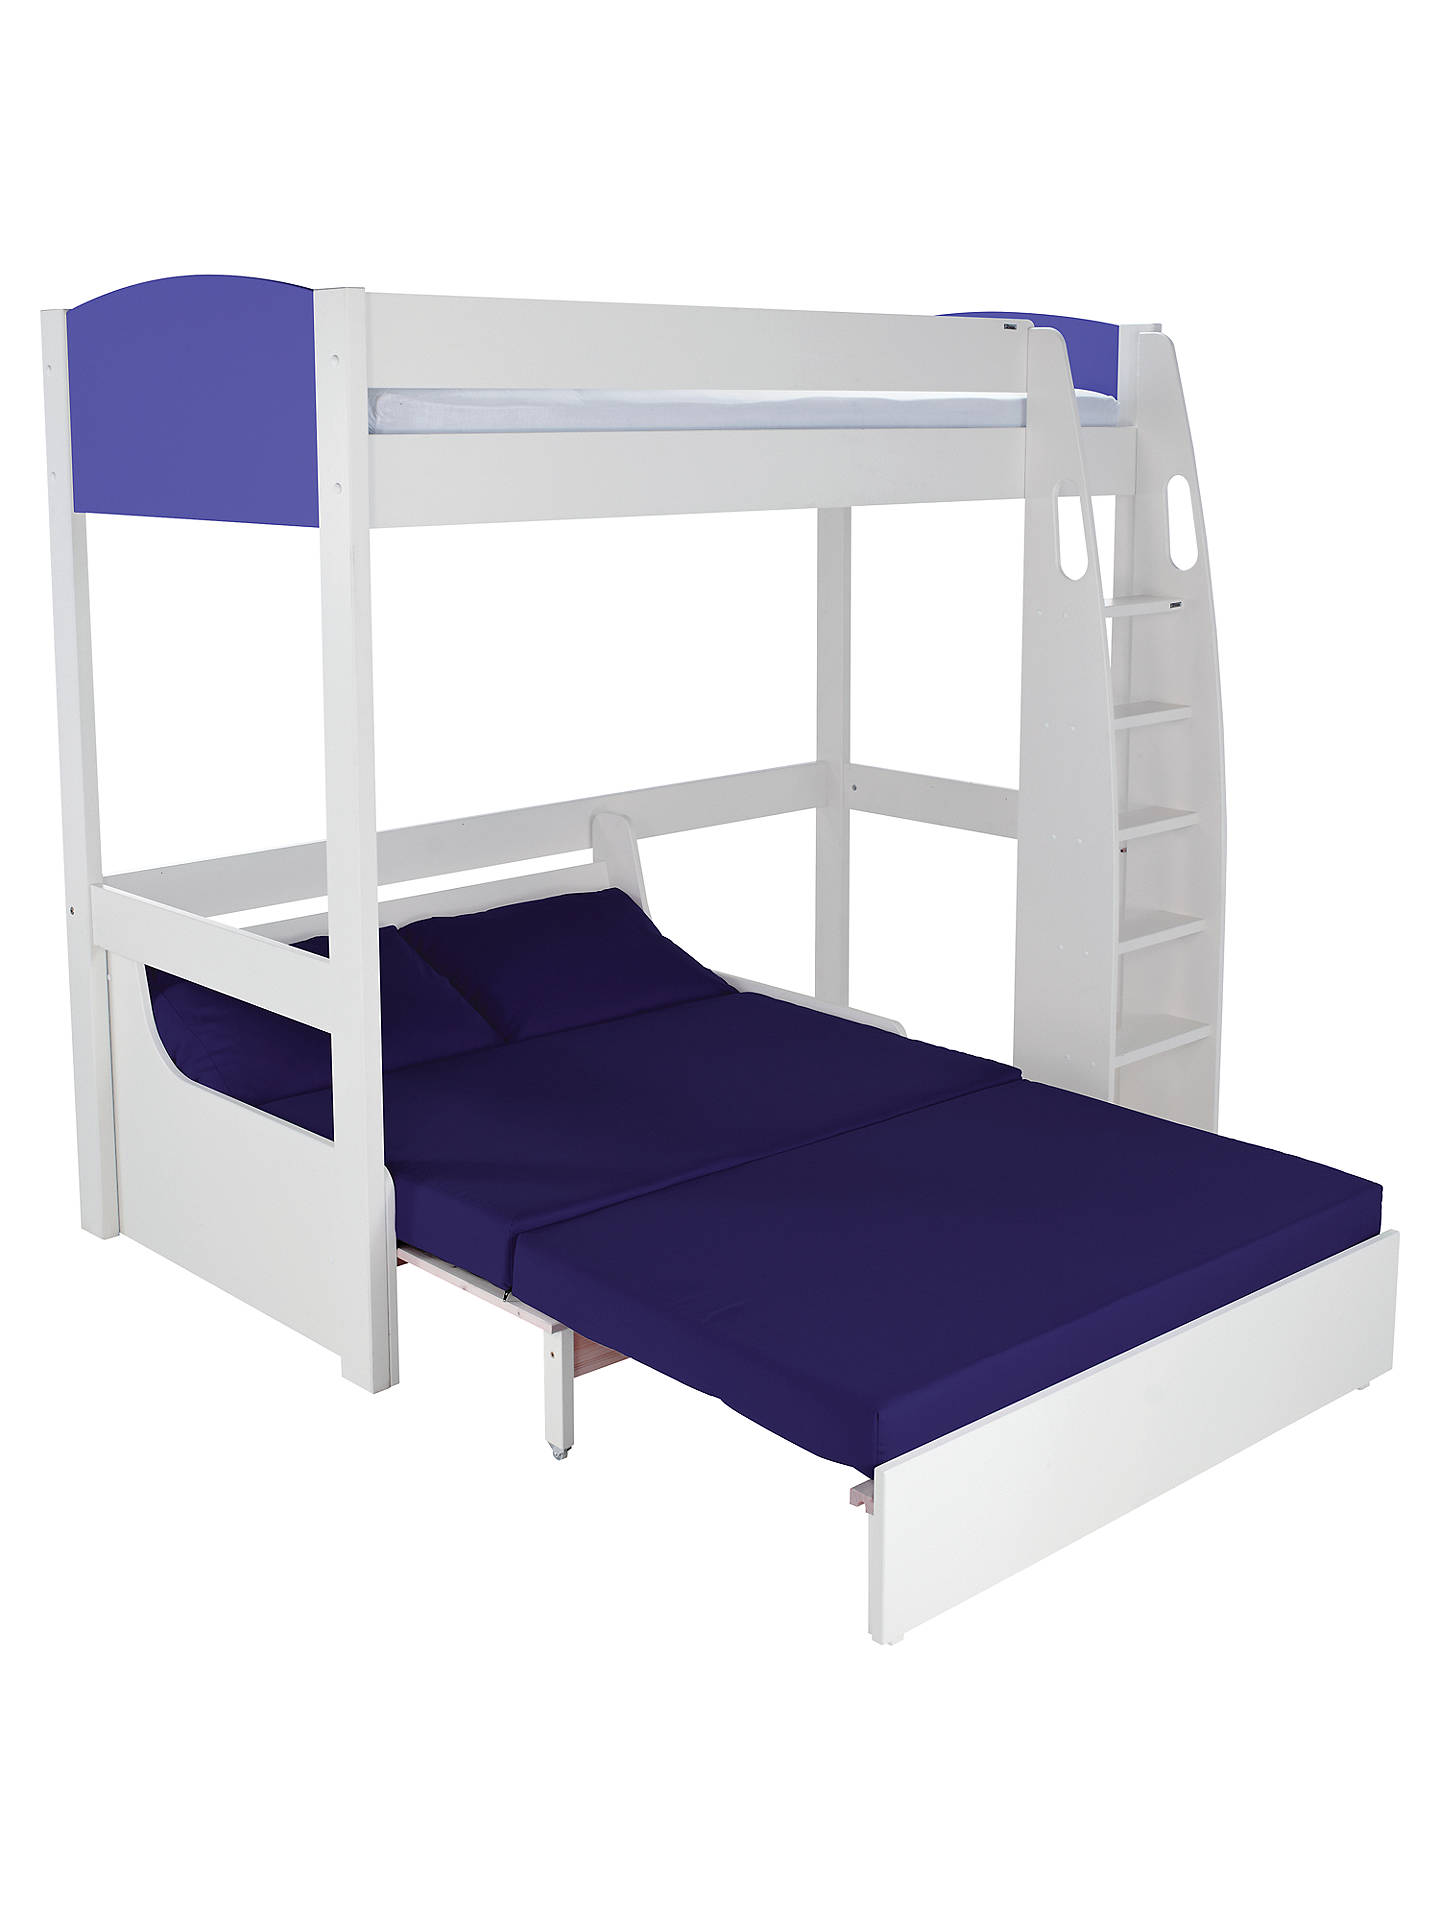 c0ff4f8cacbd Buy Stompa Uno S Plus High-Sleeper with Sofa Bed, Blue/Blue Online ...